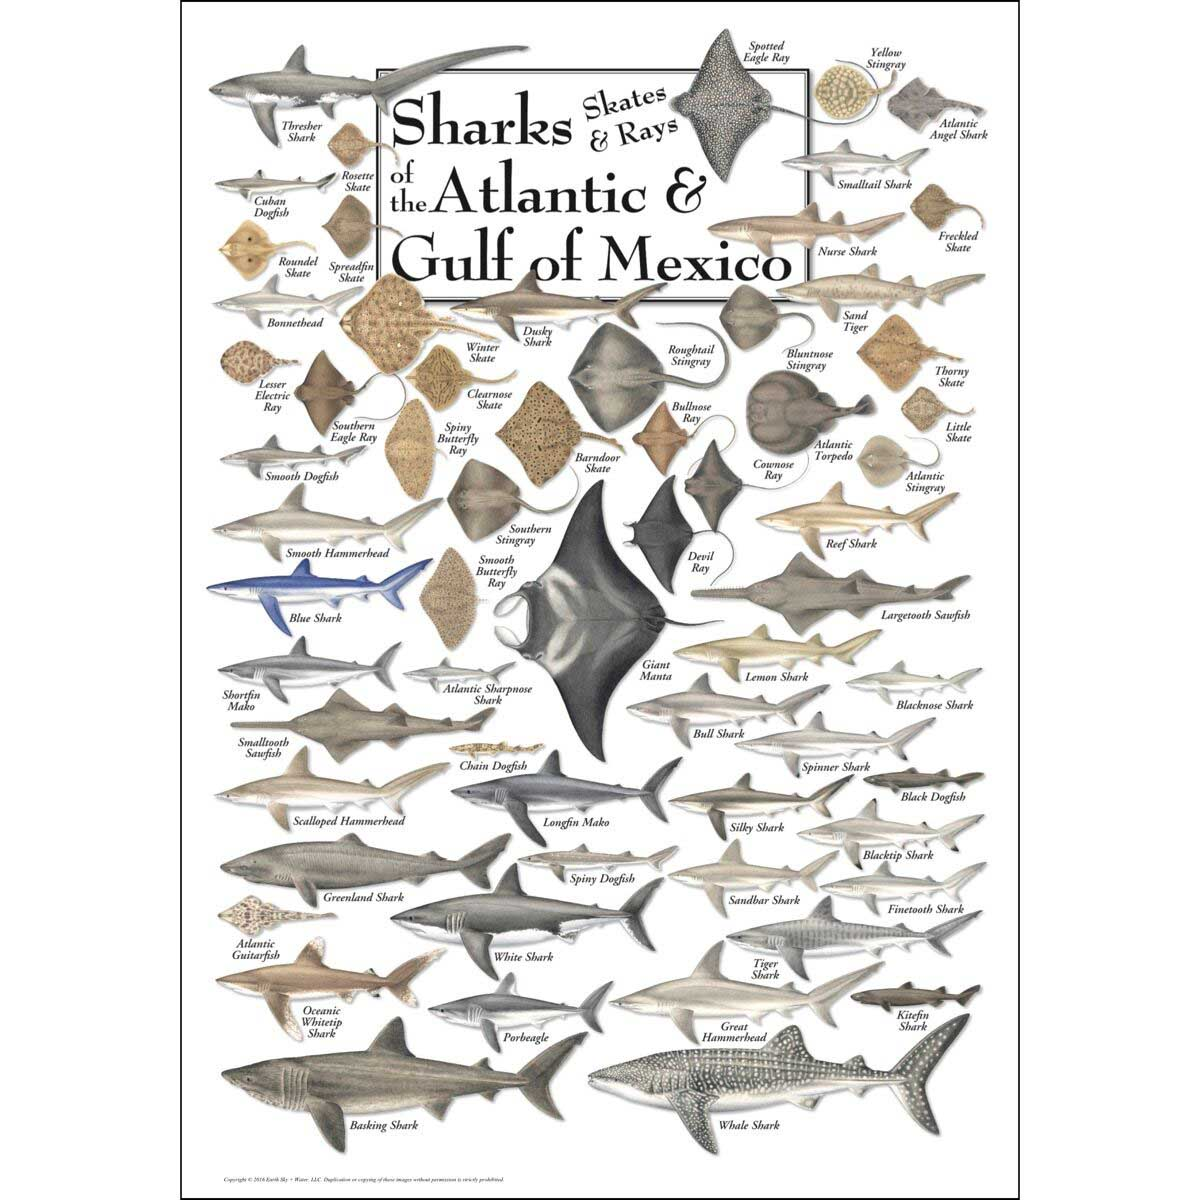 Sharks, Skates & Rays of the Atlantic and Gulf of Mexico Under The Sea Jigsaw Puzzle